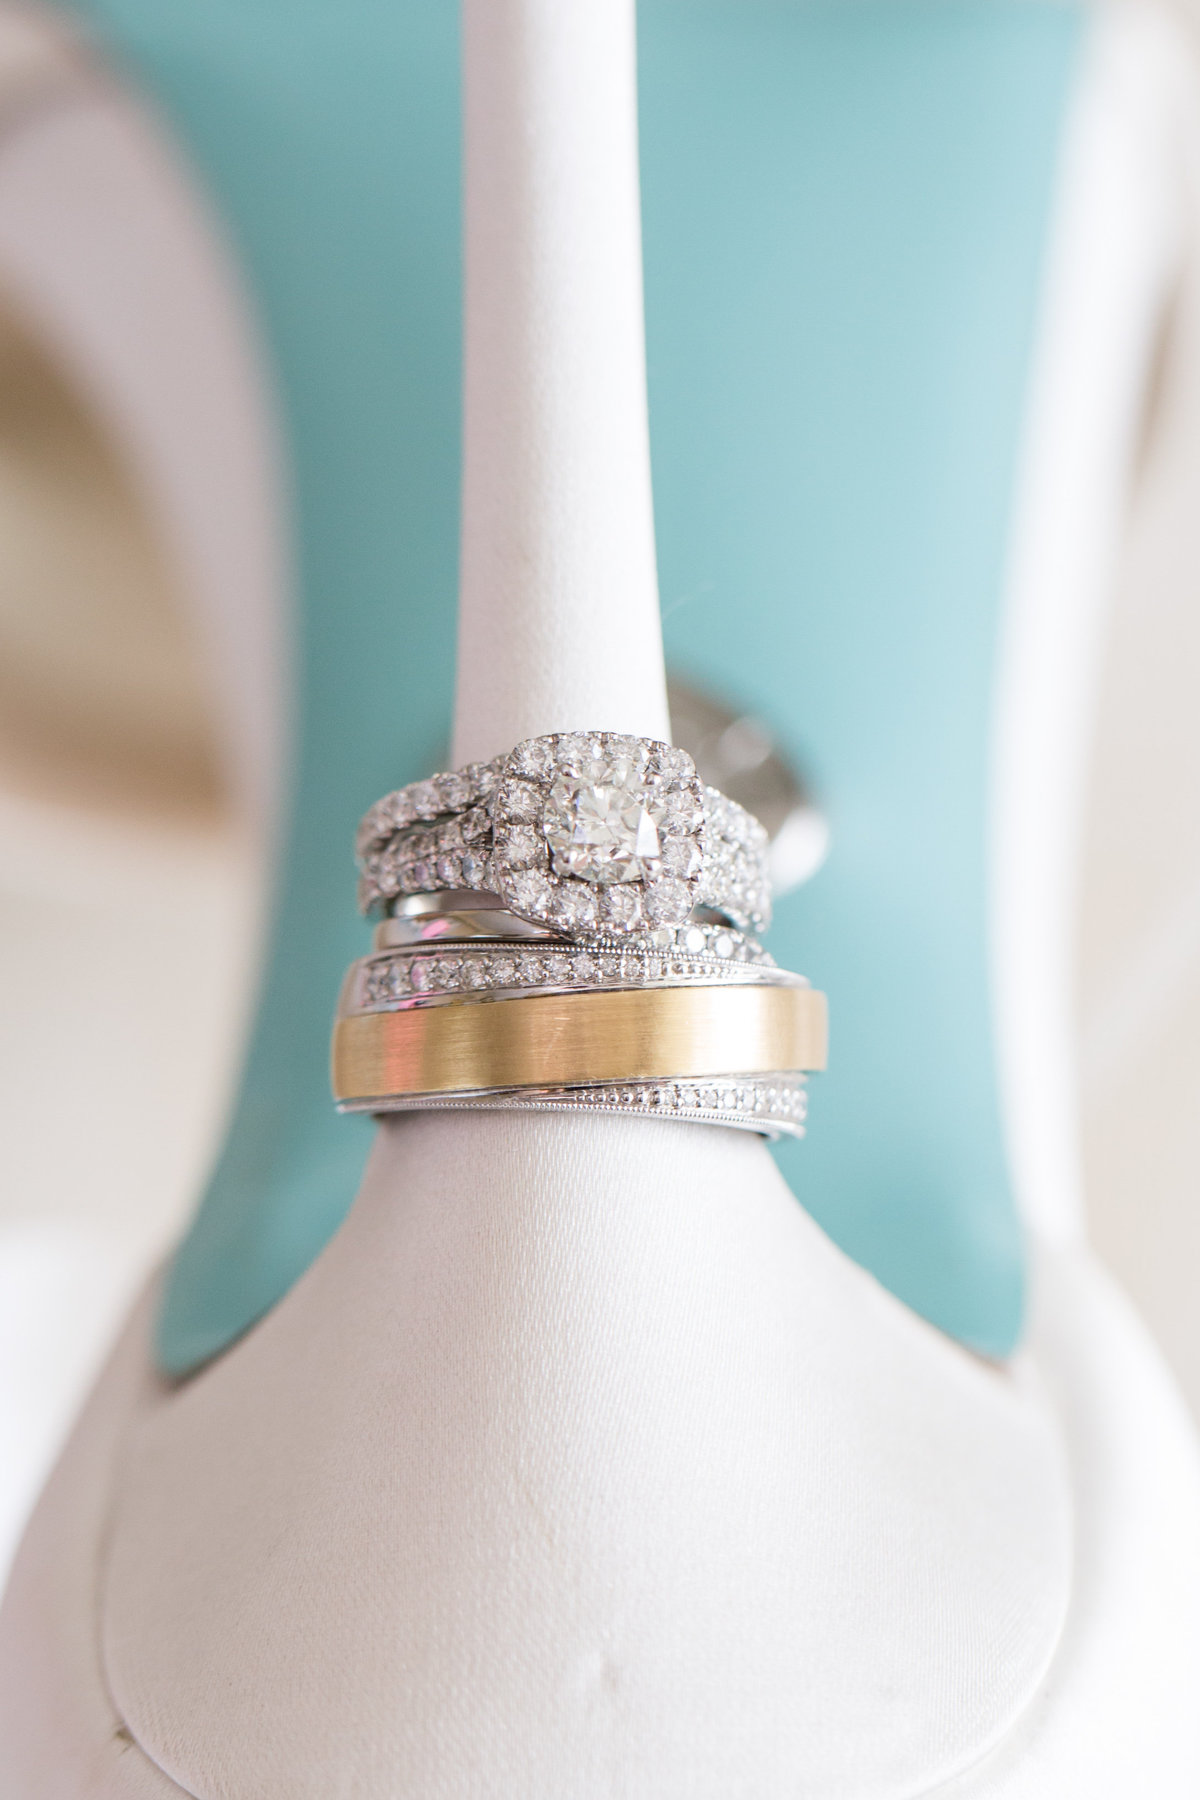 rings stacked on heel